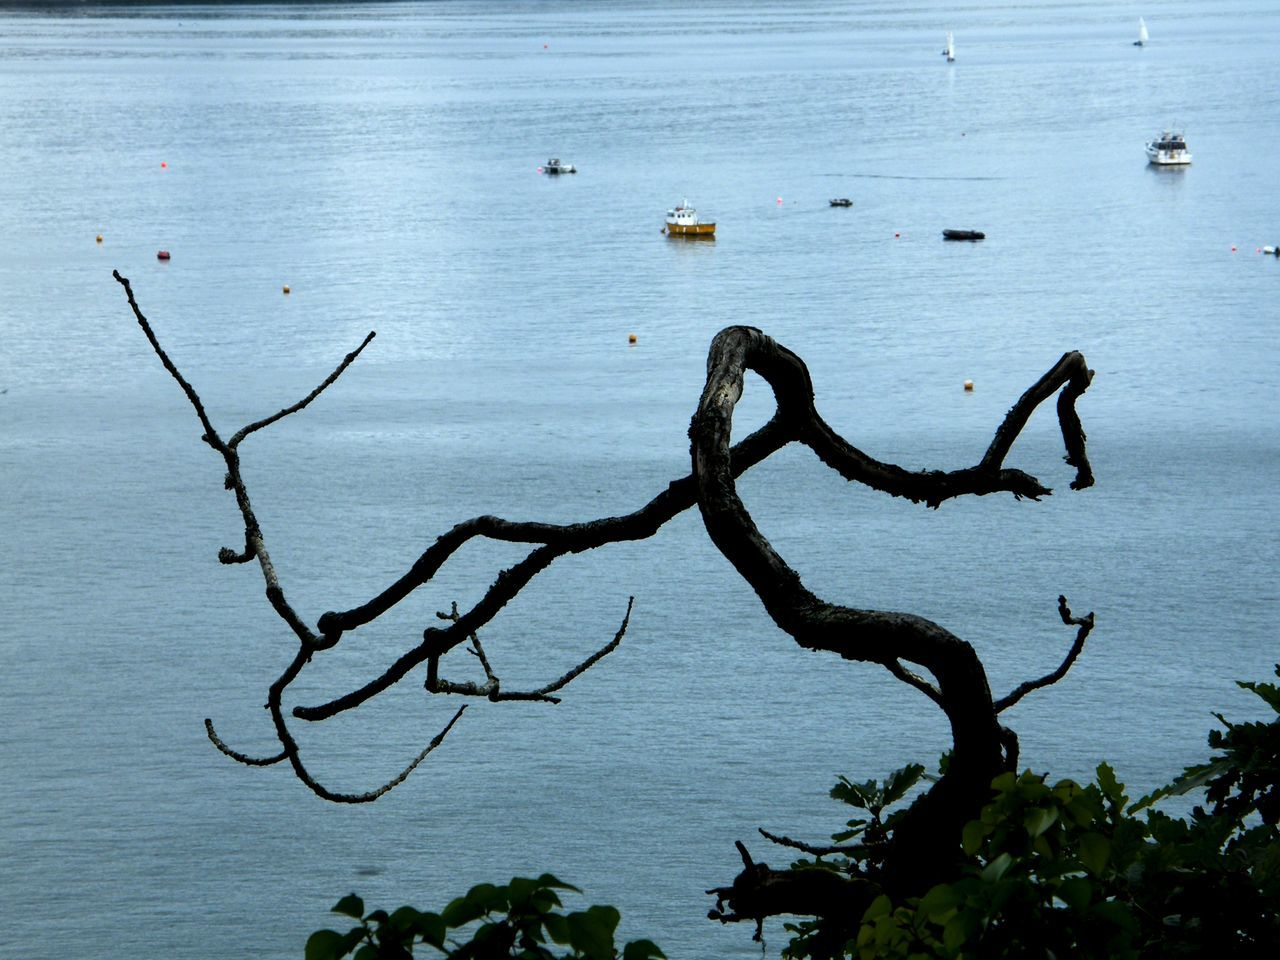 Beauty In Nature Day Lake Nature No People Outdoors Pembrokeshire Pembrokeshire Coast Pembrokeshire Coastal Path Saundersfoot Saundersfoot Harbour Scenics Seaside Tranquil Scene Tranquility Tree Water